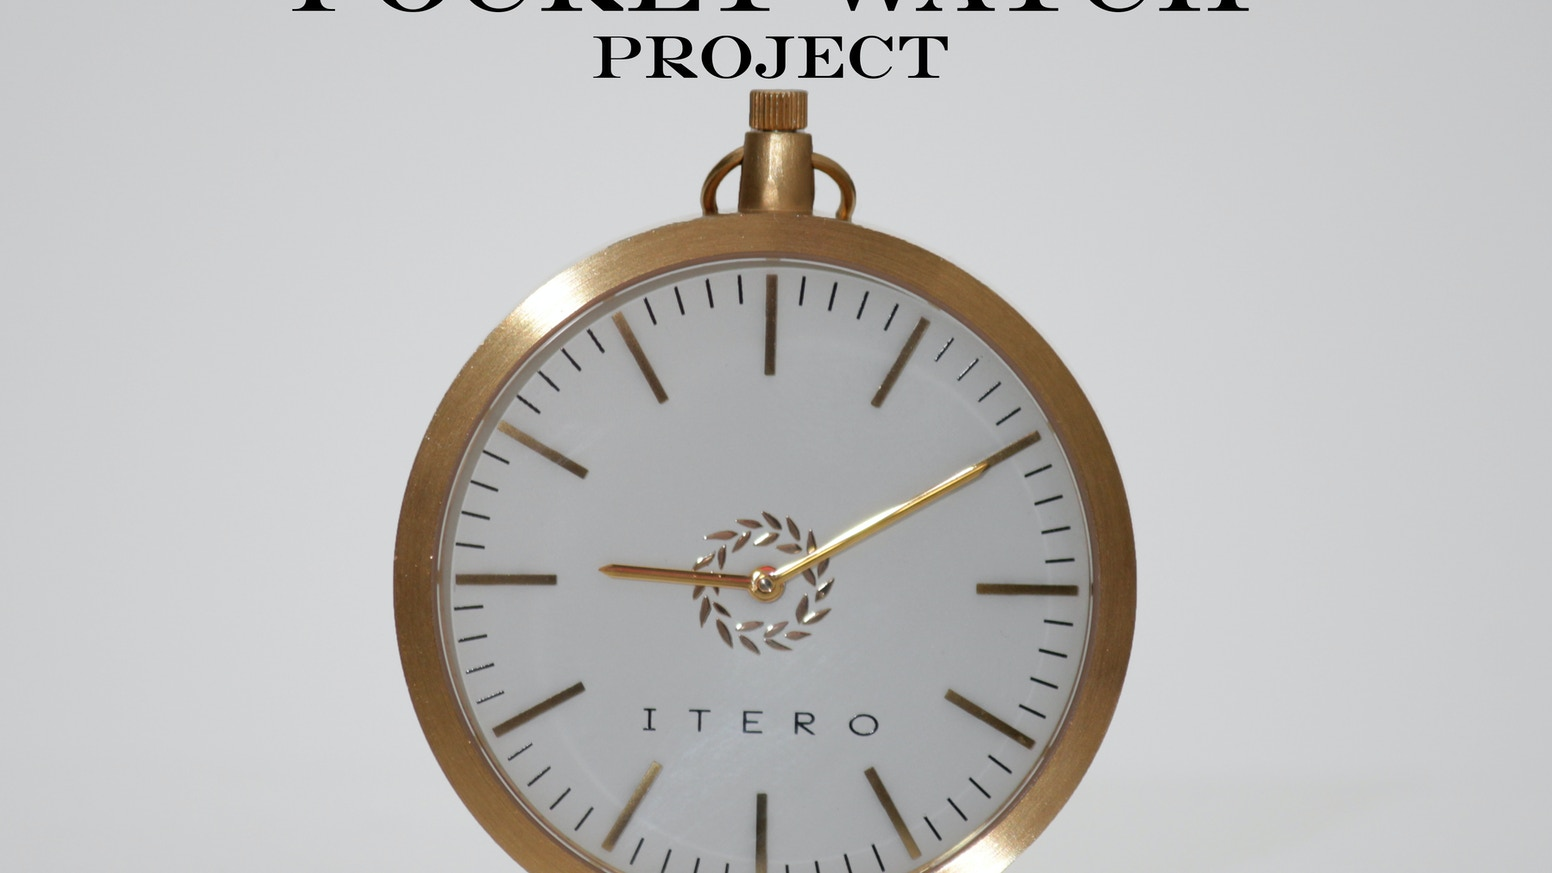 Itero pocket watches are back by itero watch kickstarter modernly designed pocket watches made for everyone minimalistic design swiss movement sapphire crystal jeuxipadfo Image collections